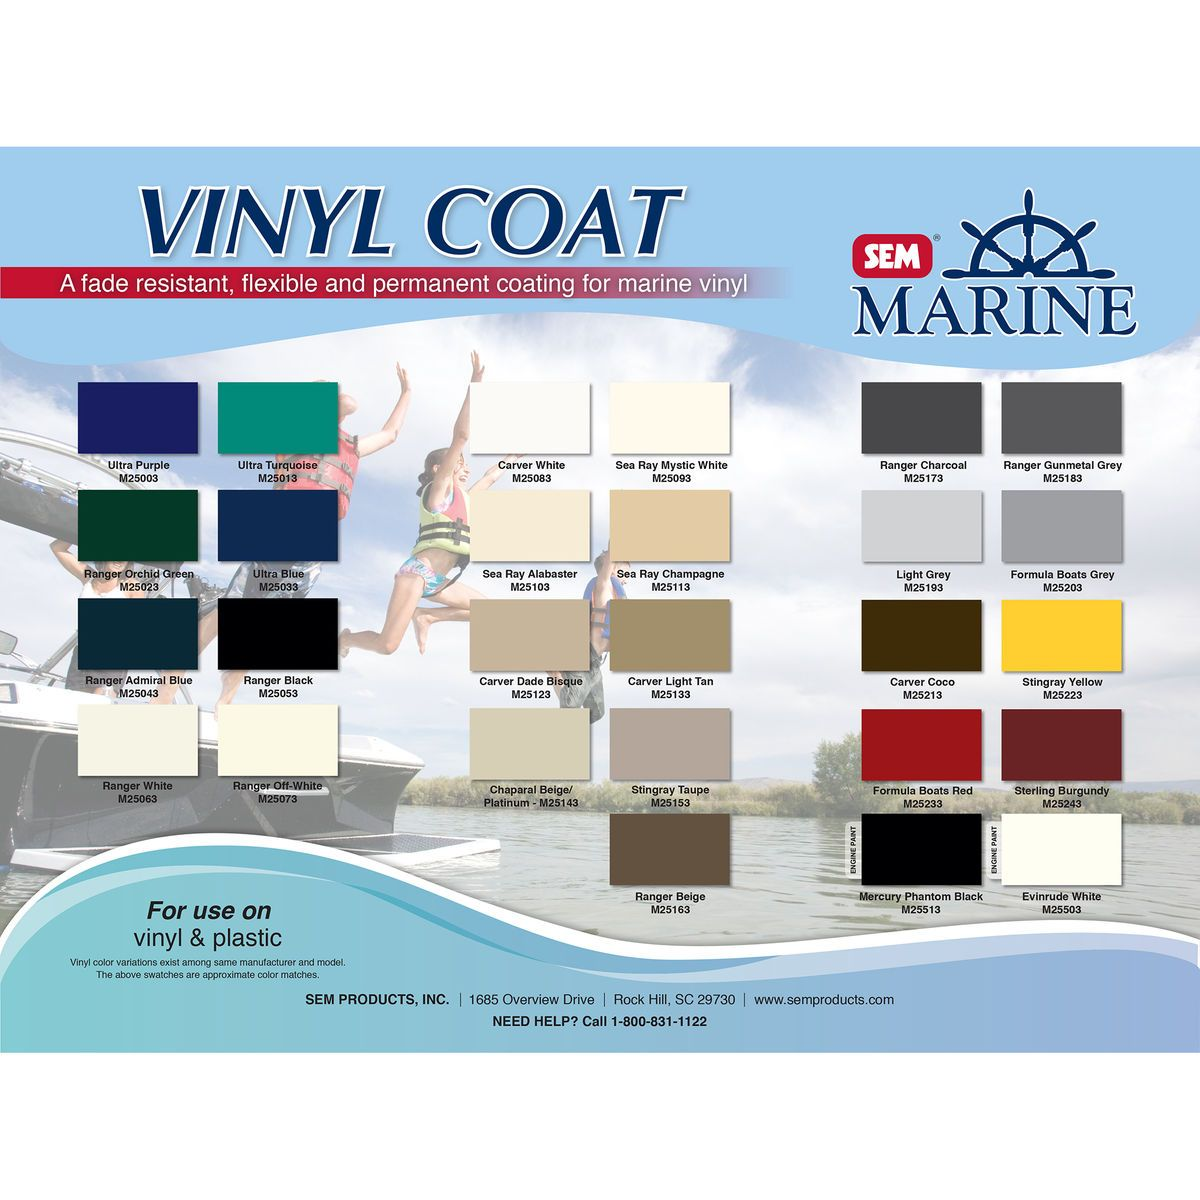 Uncategorized Vinyl Coat Paint sem marine vinyl coat spray boat pinterest coats vinyls and paint is an elastomeric coating formulated to match restore or change the color of most surfaces rig